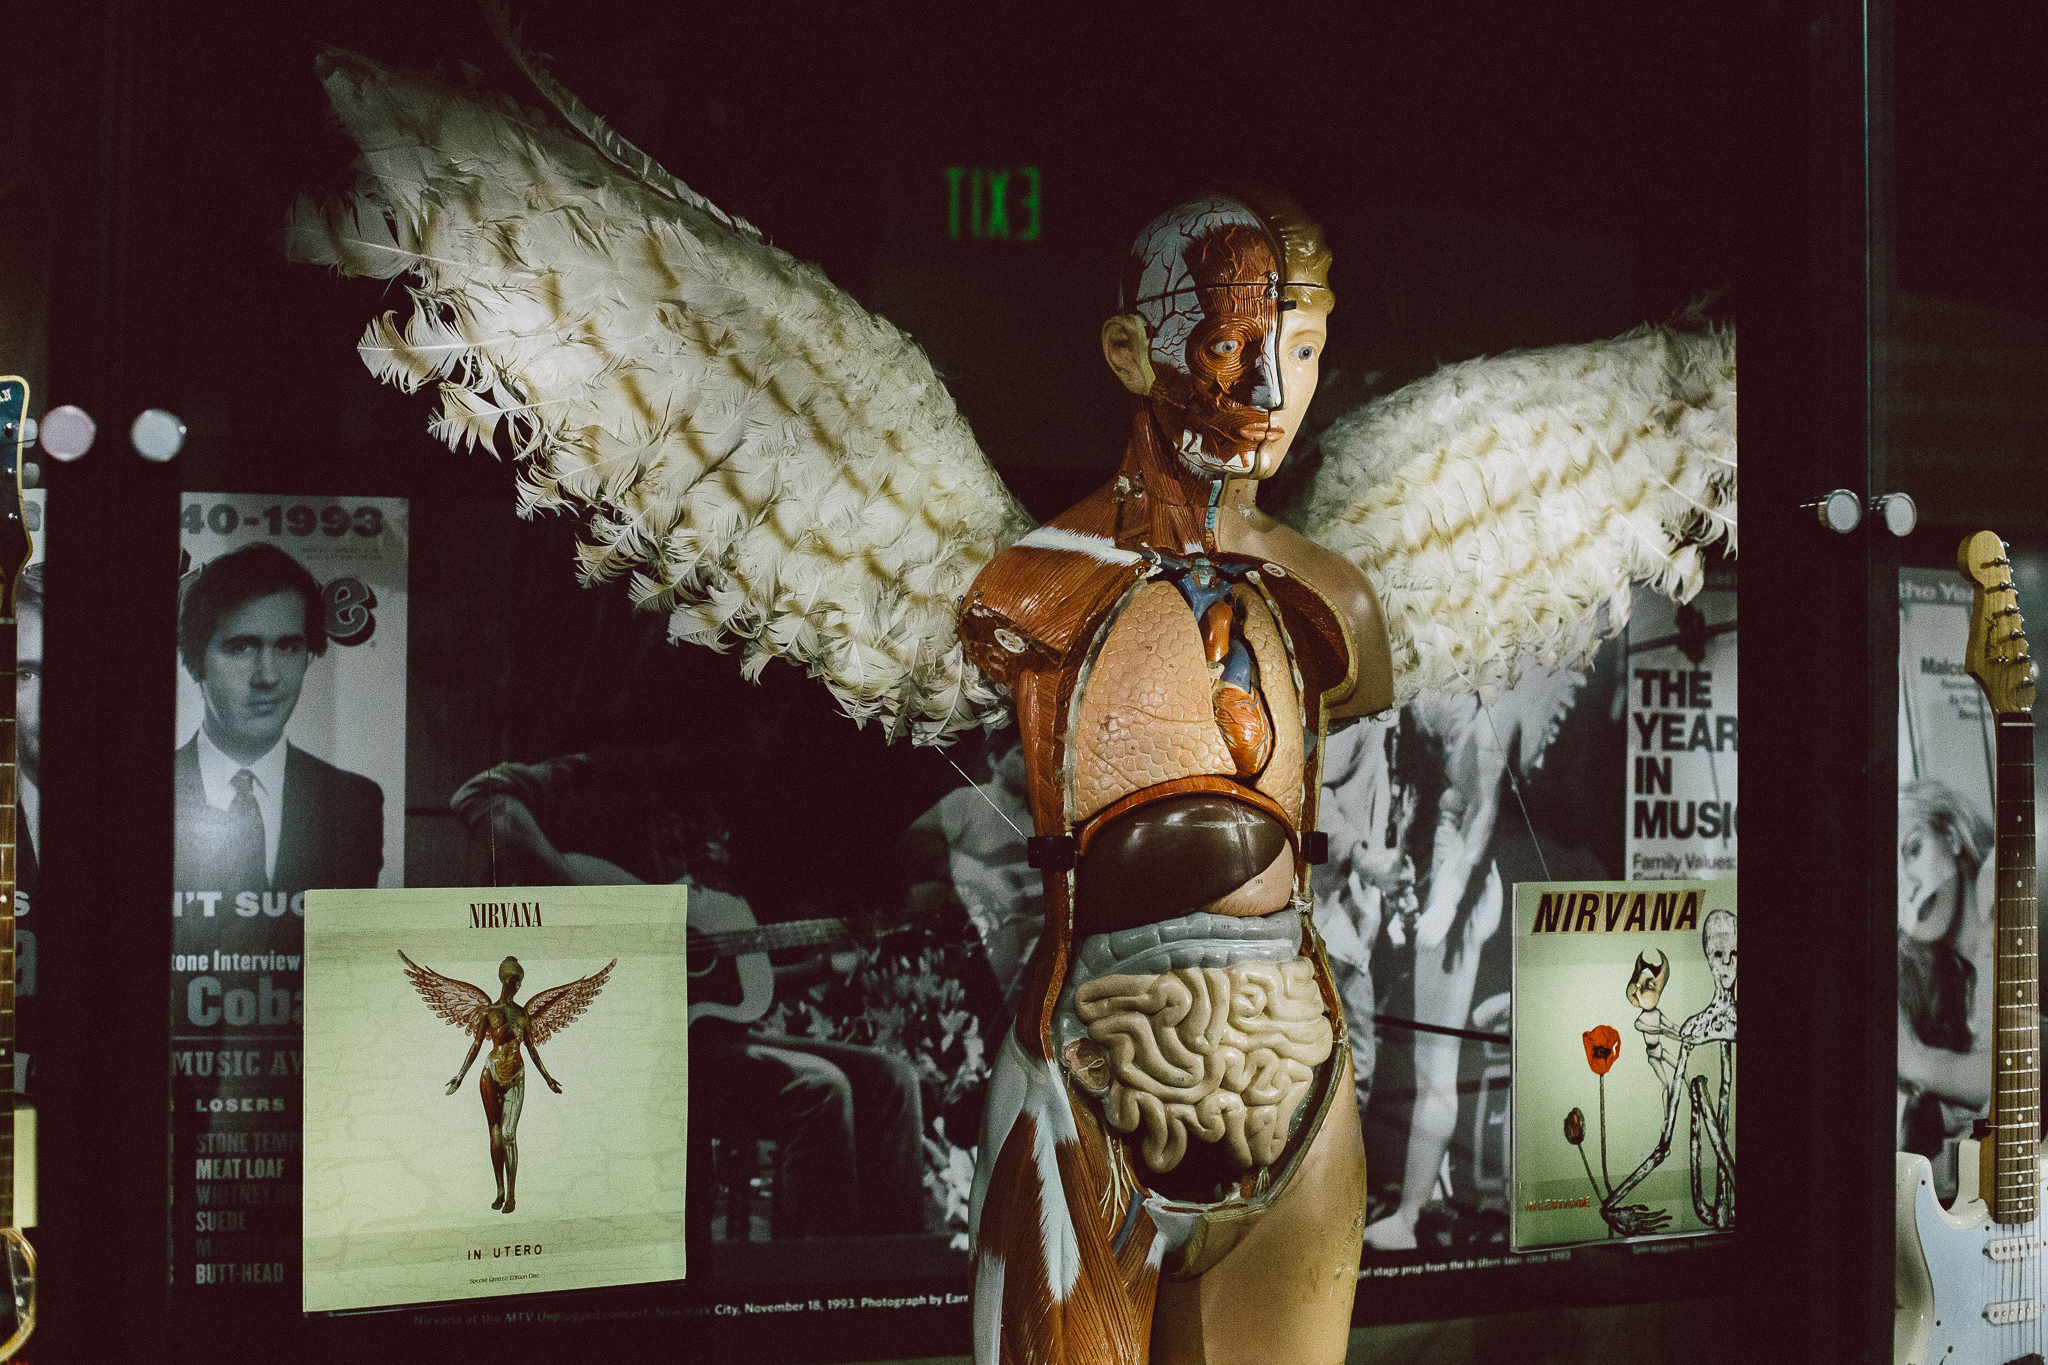 Nirvana In Utero sculpture